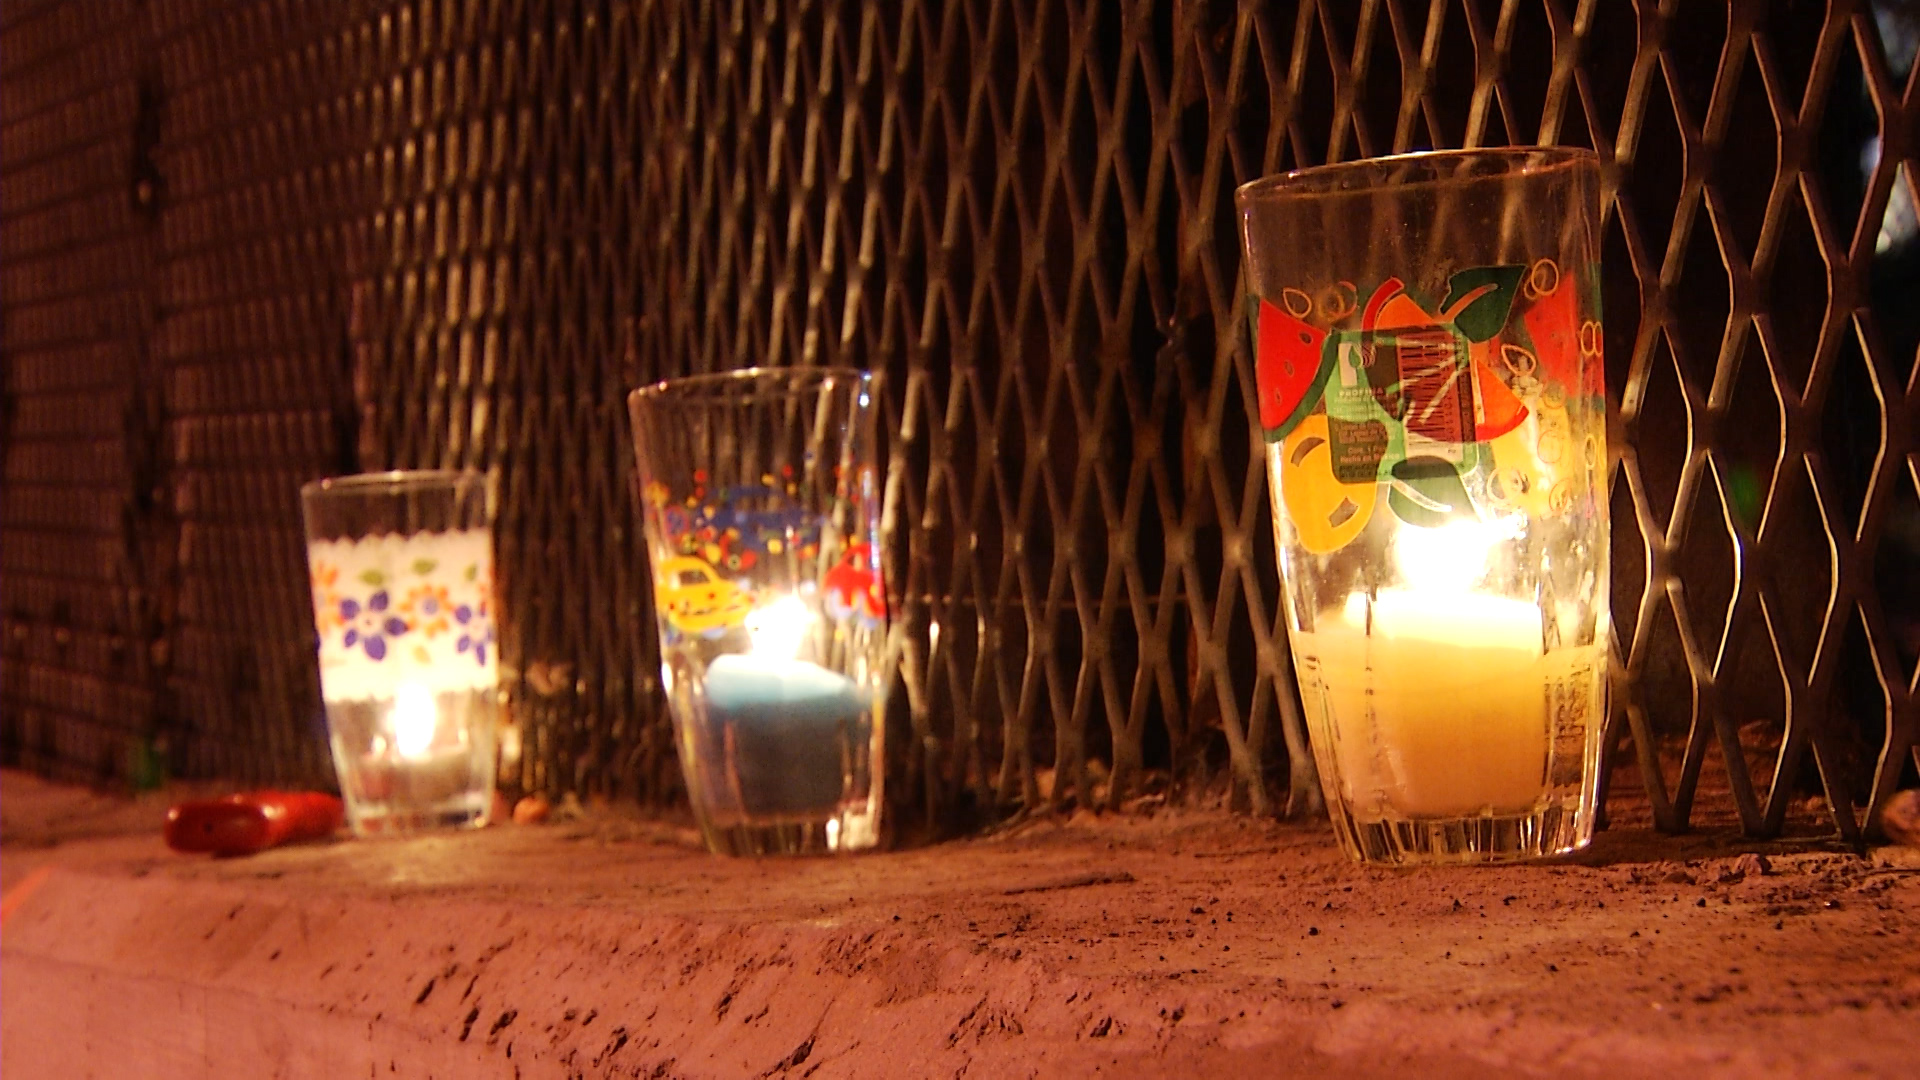 Candles lit for a vigil burn along the U.S.-Mexico border in Nogales, Arizona.